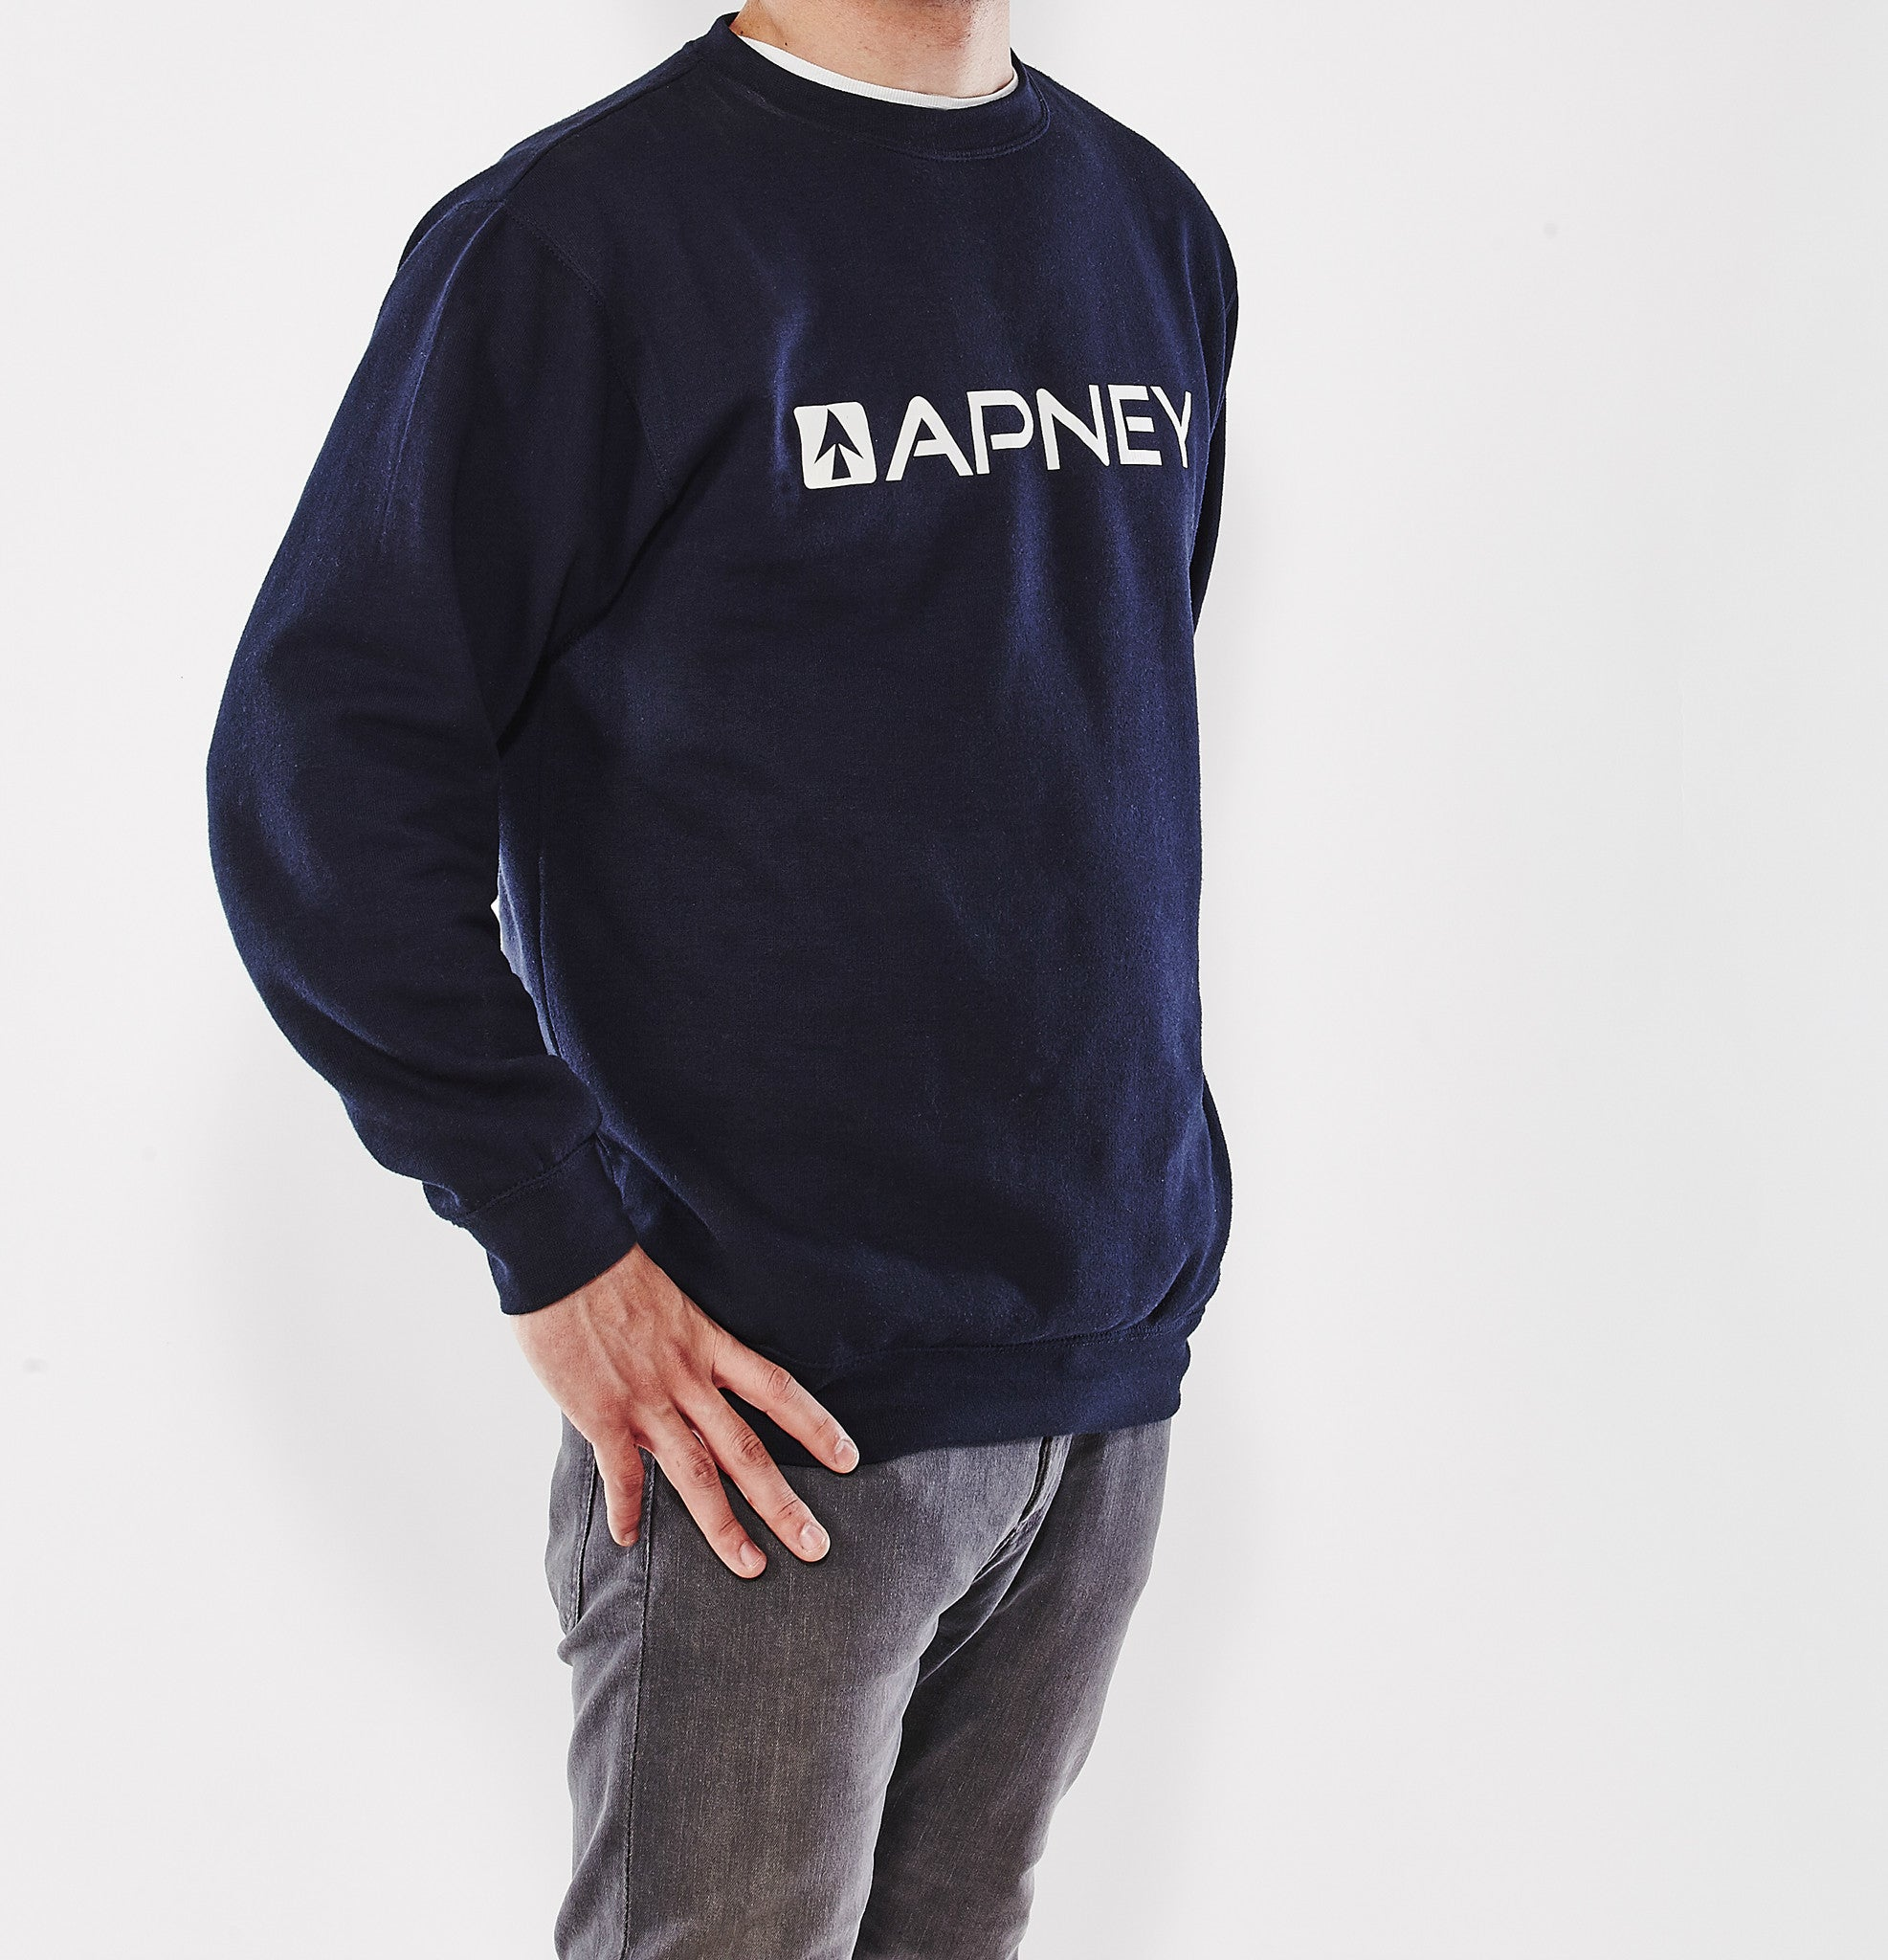 SUDADERA SIN CAPUCHA APNEY DARK BLUE